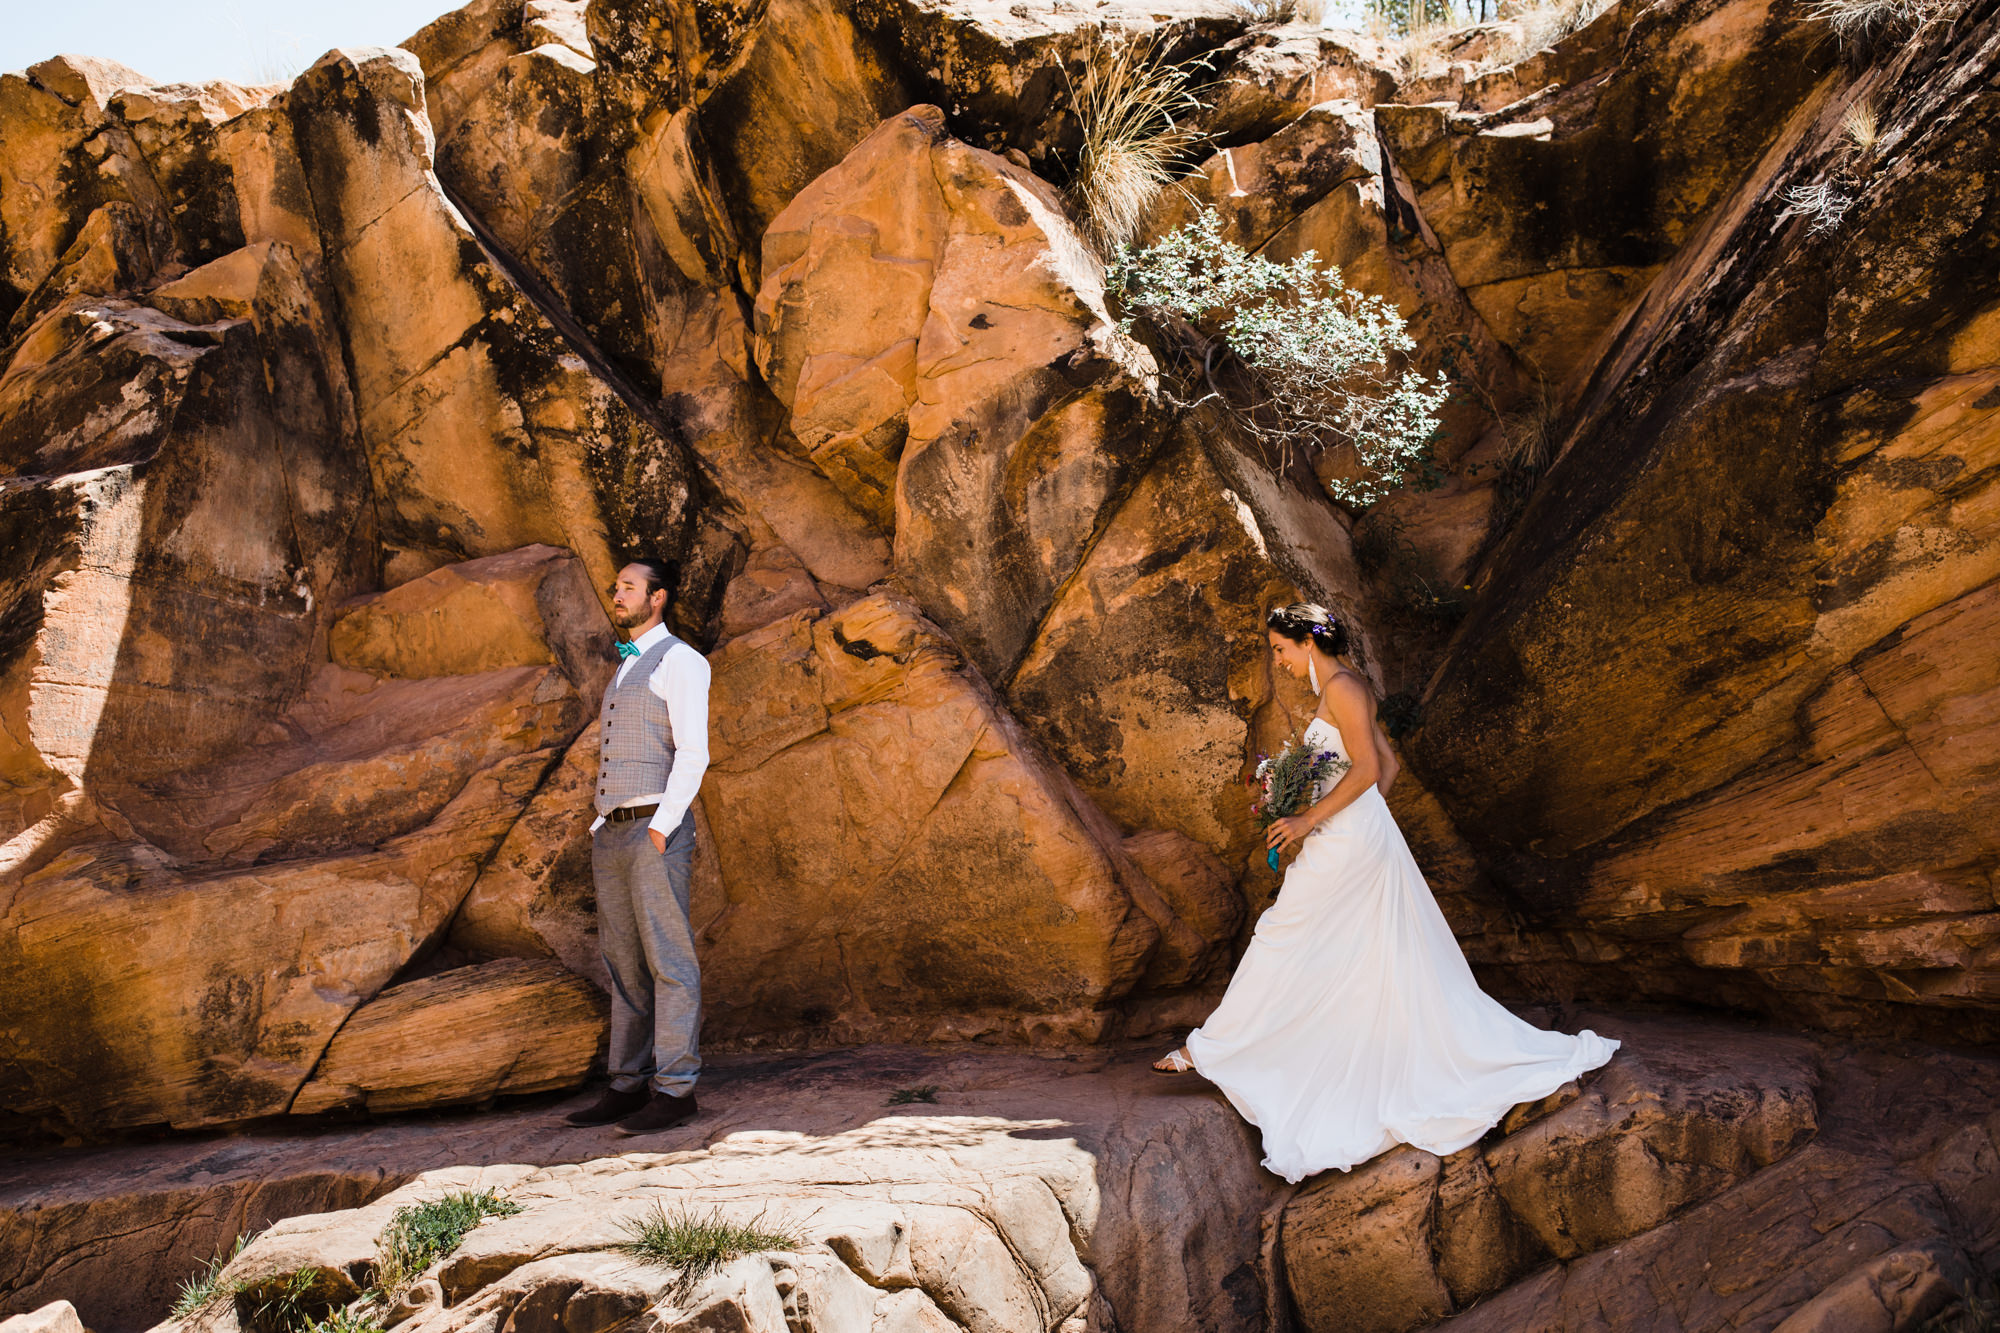 intimate wedding day in moab, utah | destination adventure wedding photographers | the hearnes adventure photography | www.thehearnes.com